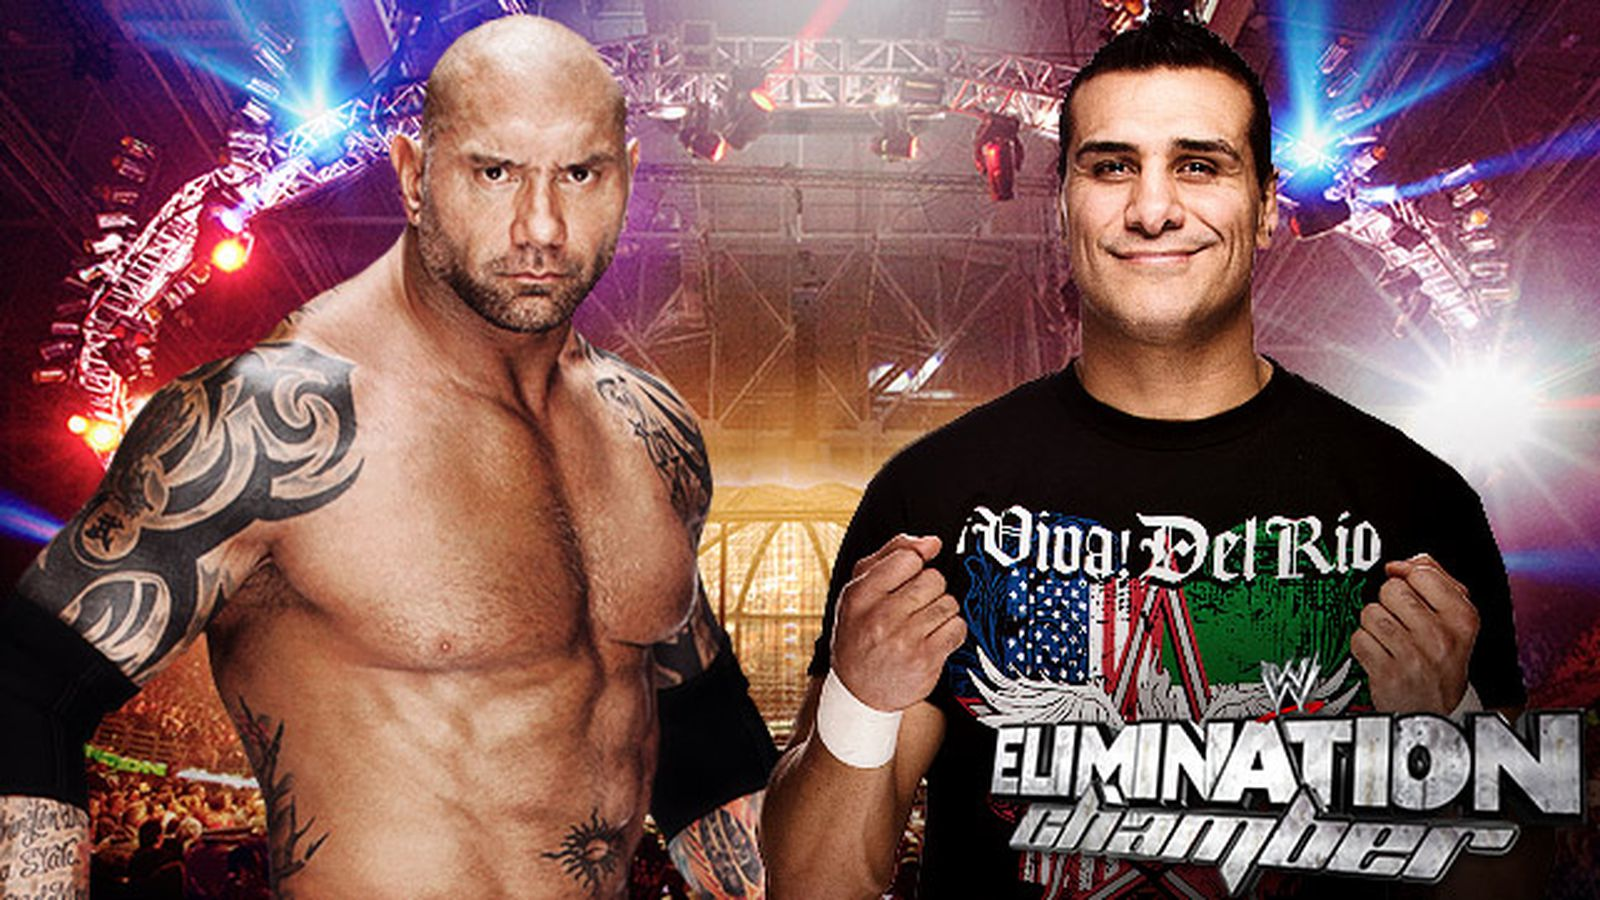 wwe elimination chamber 2014 match card preview batista